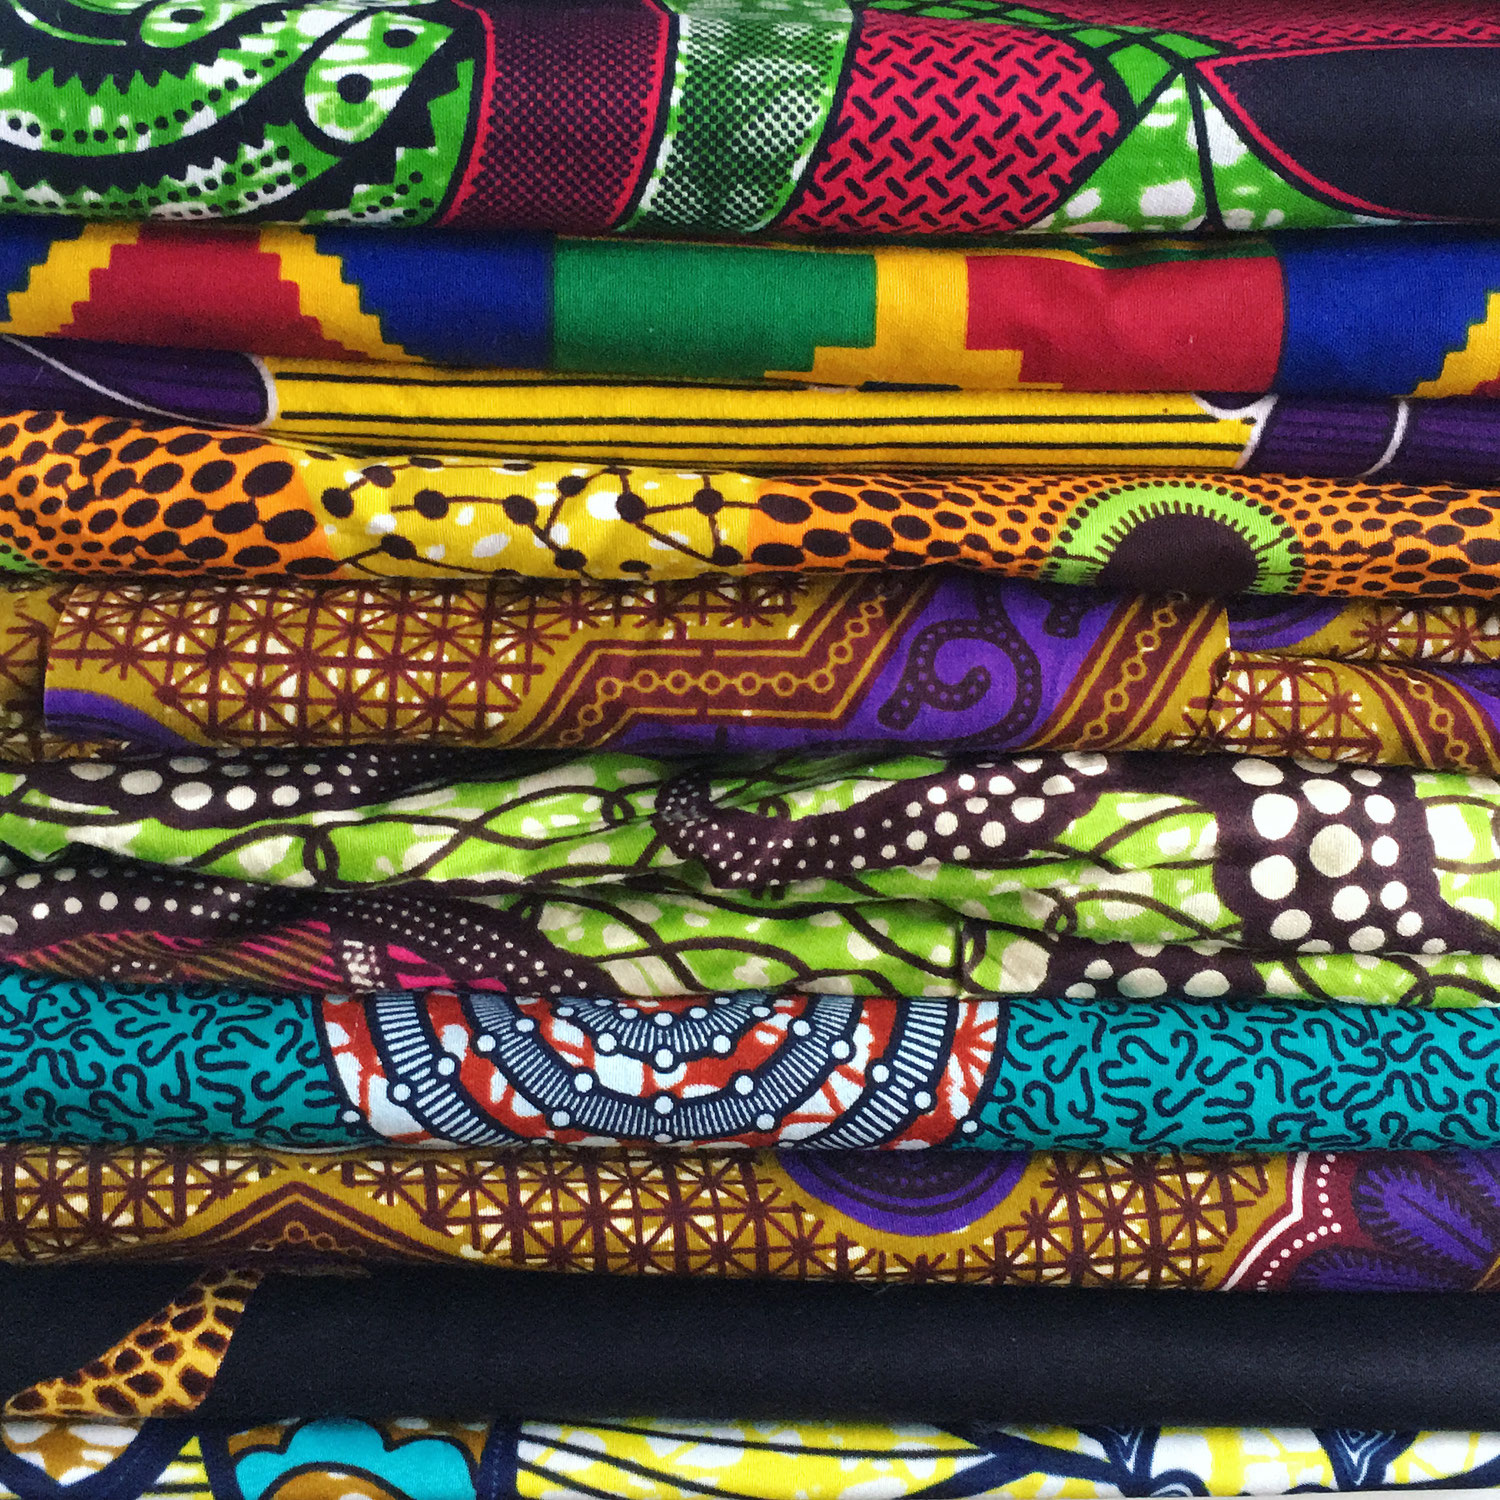 8 reasons to love African print fabrics